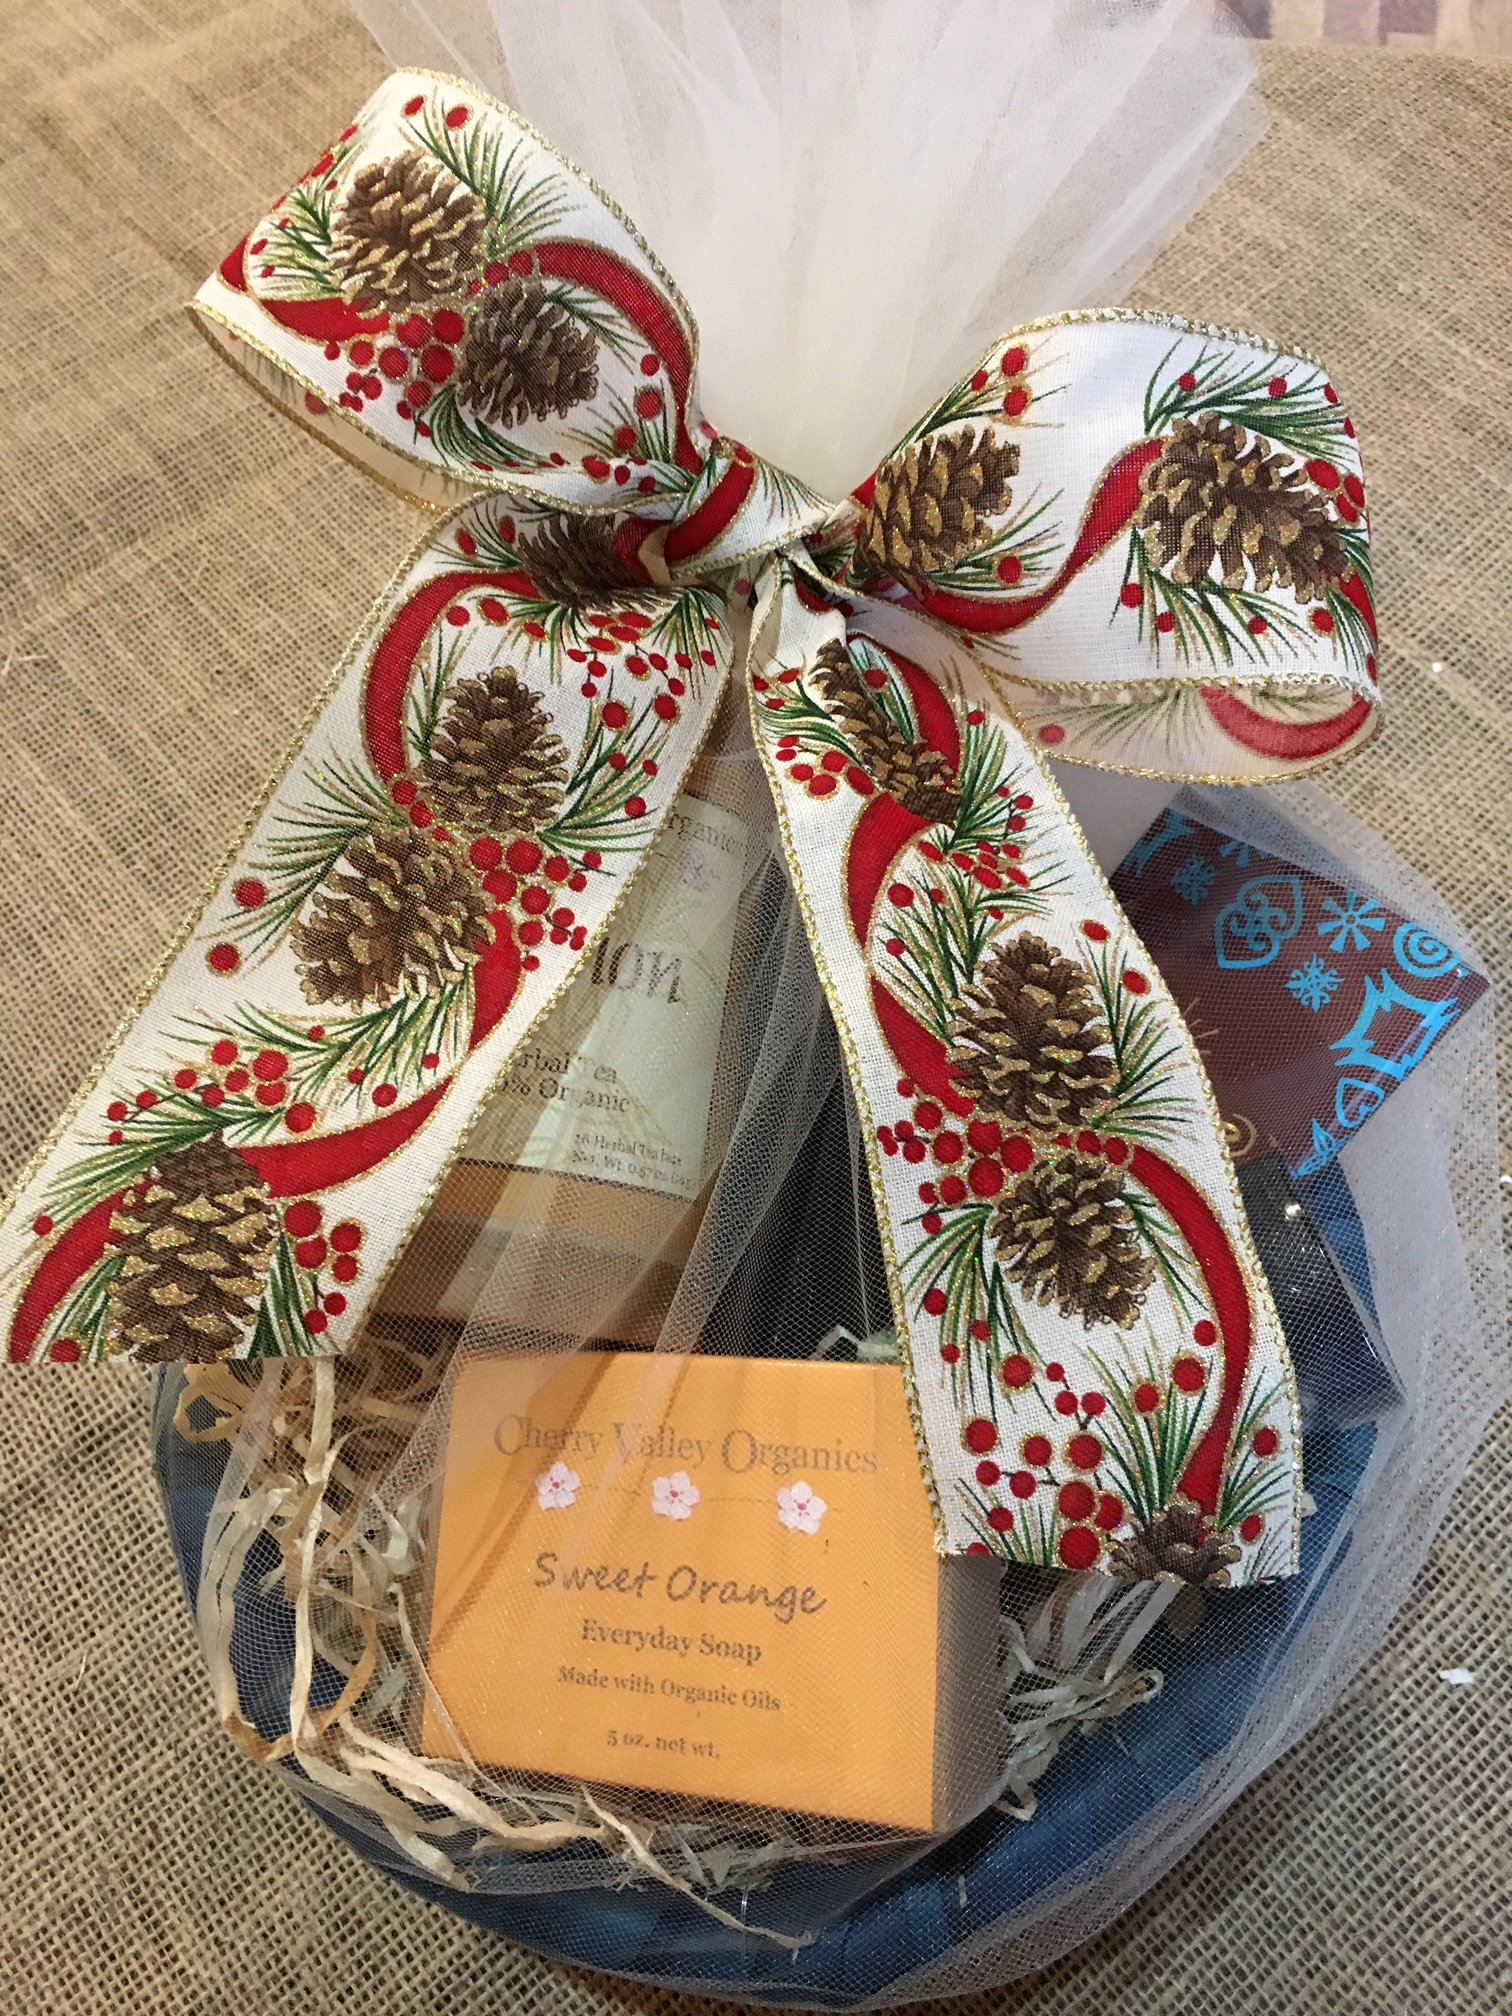 Give a Locally-Made Organic Gift this Holiday!